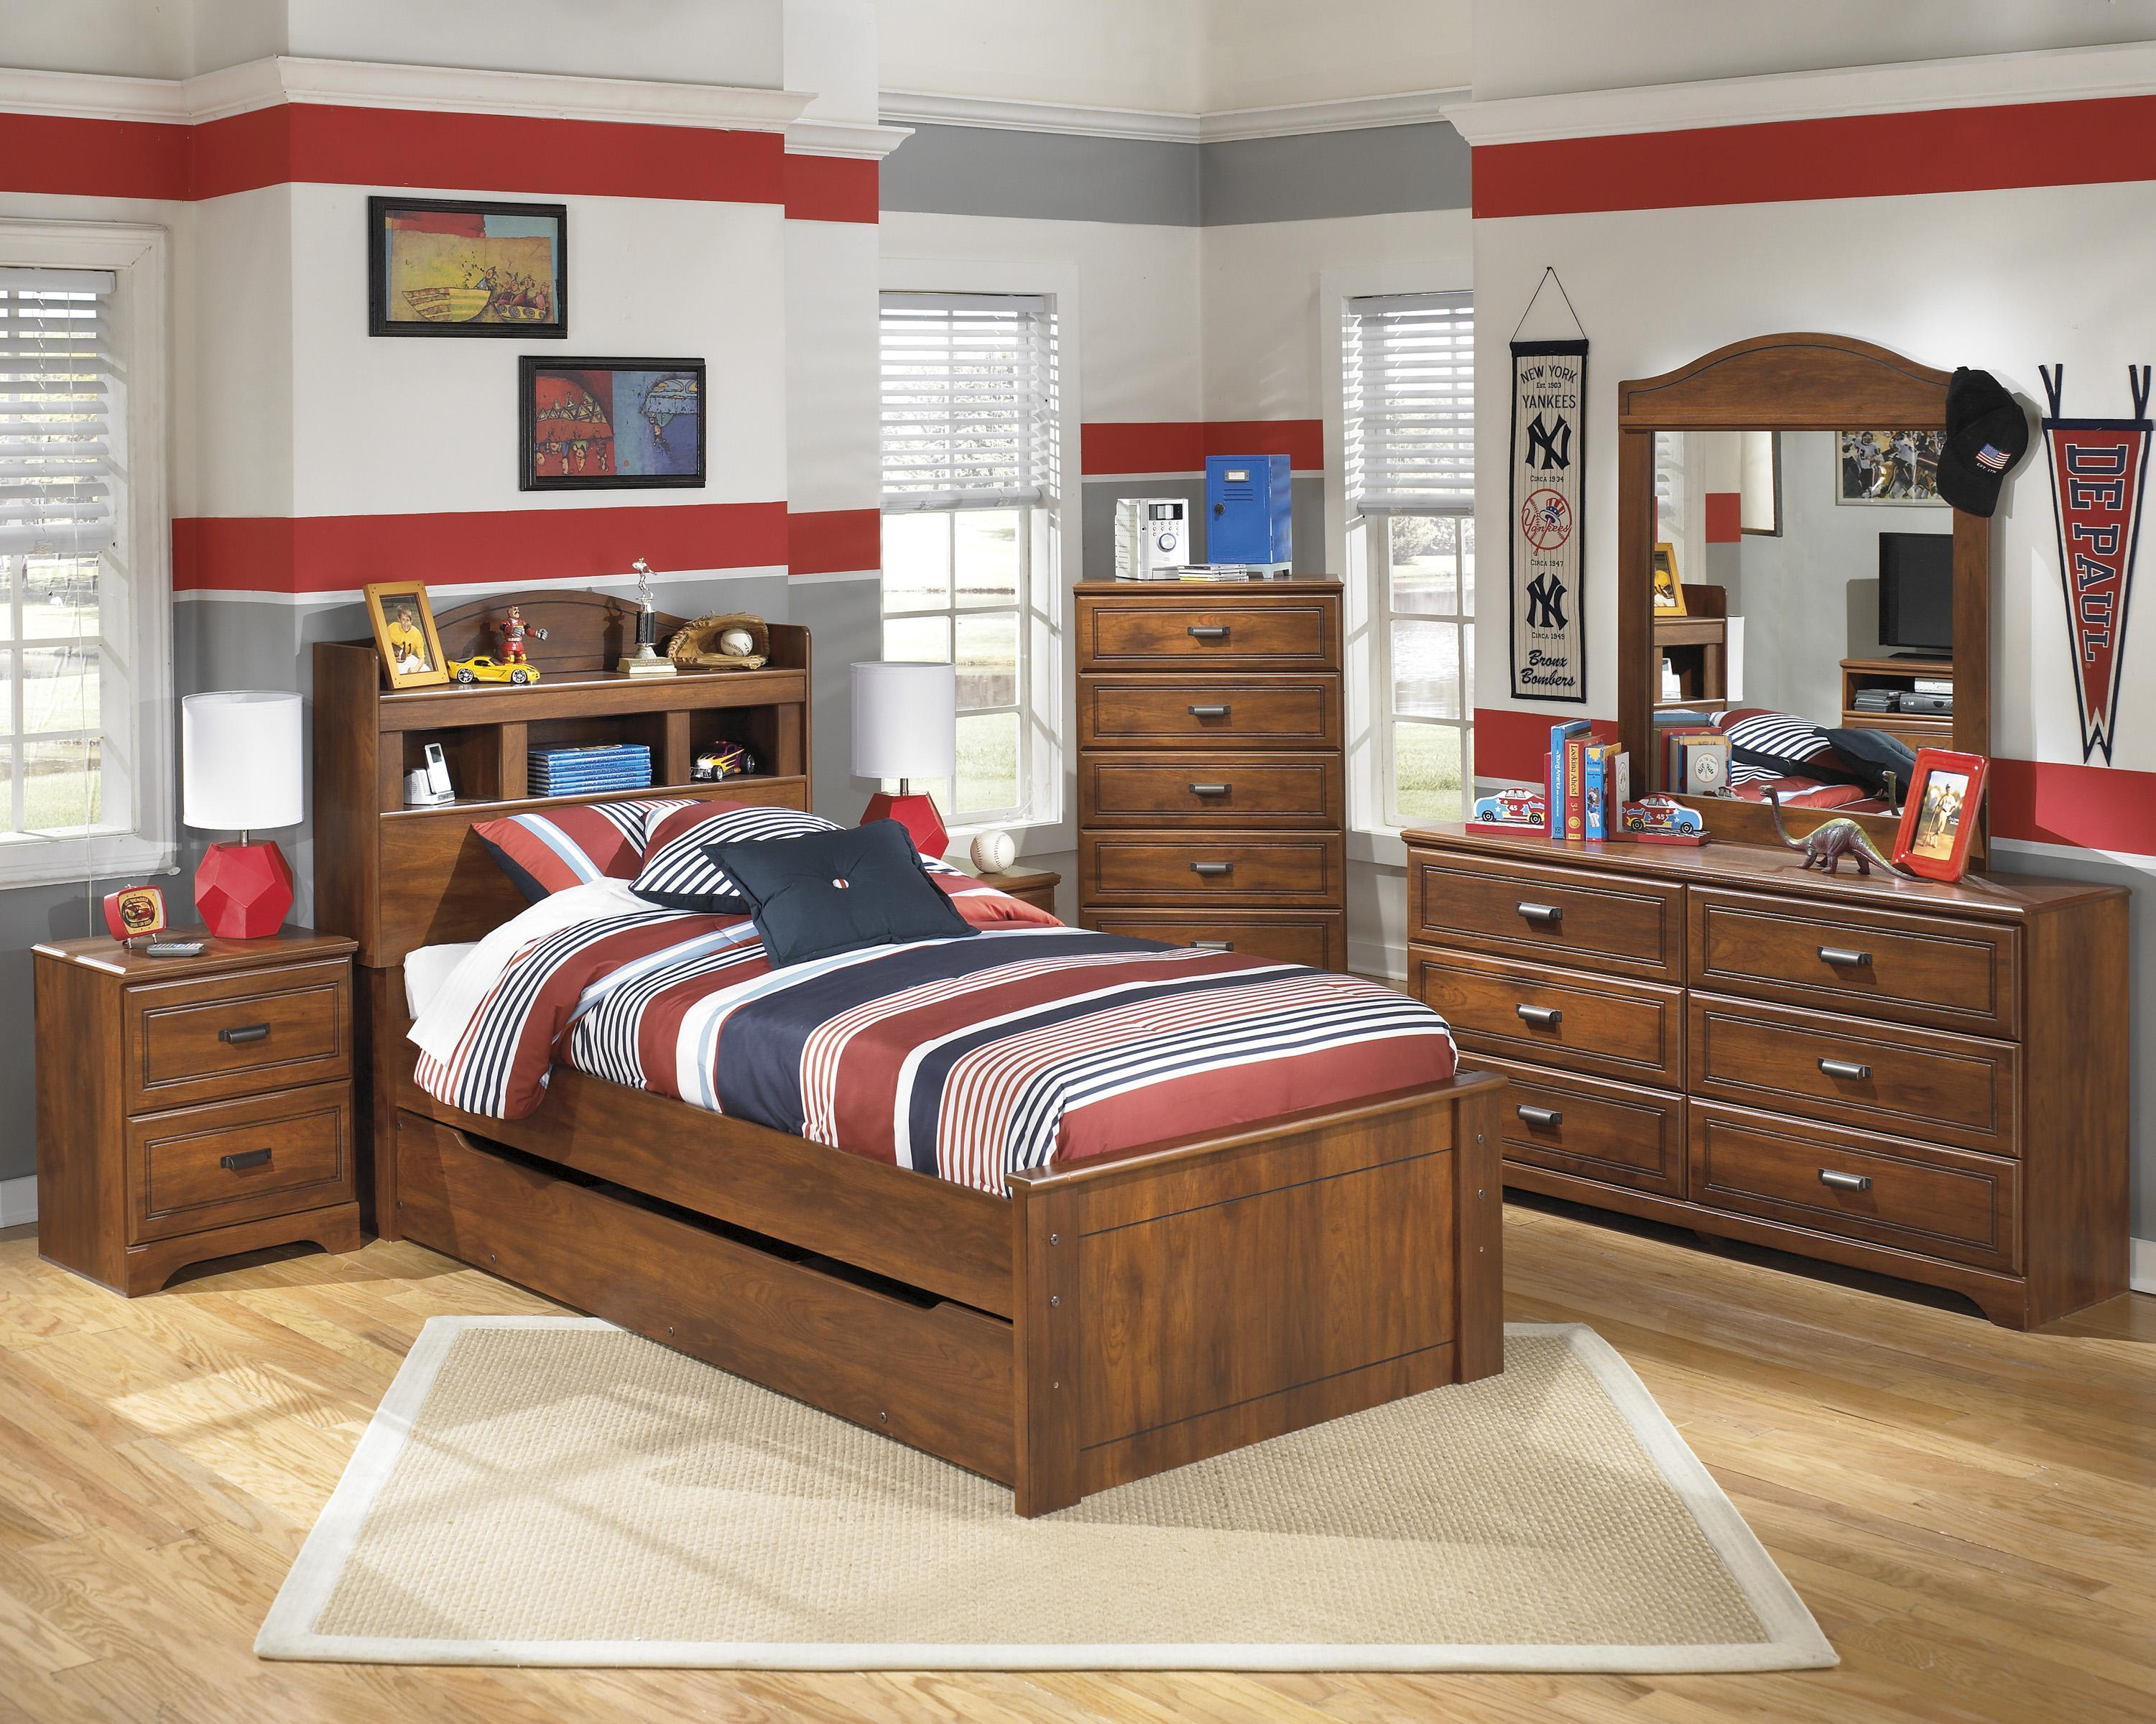 Signature Design by Ashley Barchan Twin Bedroom Group - Item Number: B228 T Bedroom Group 6